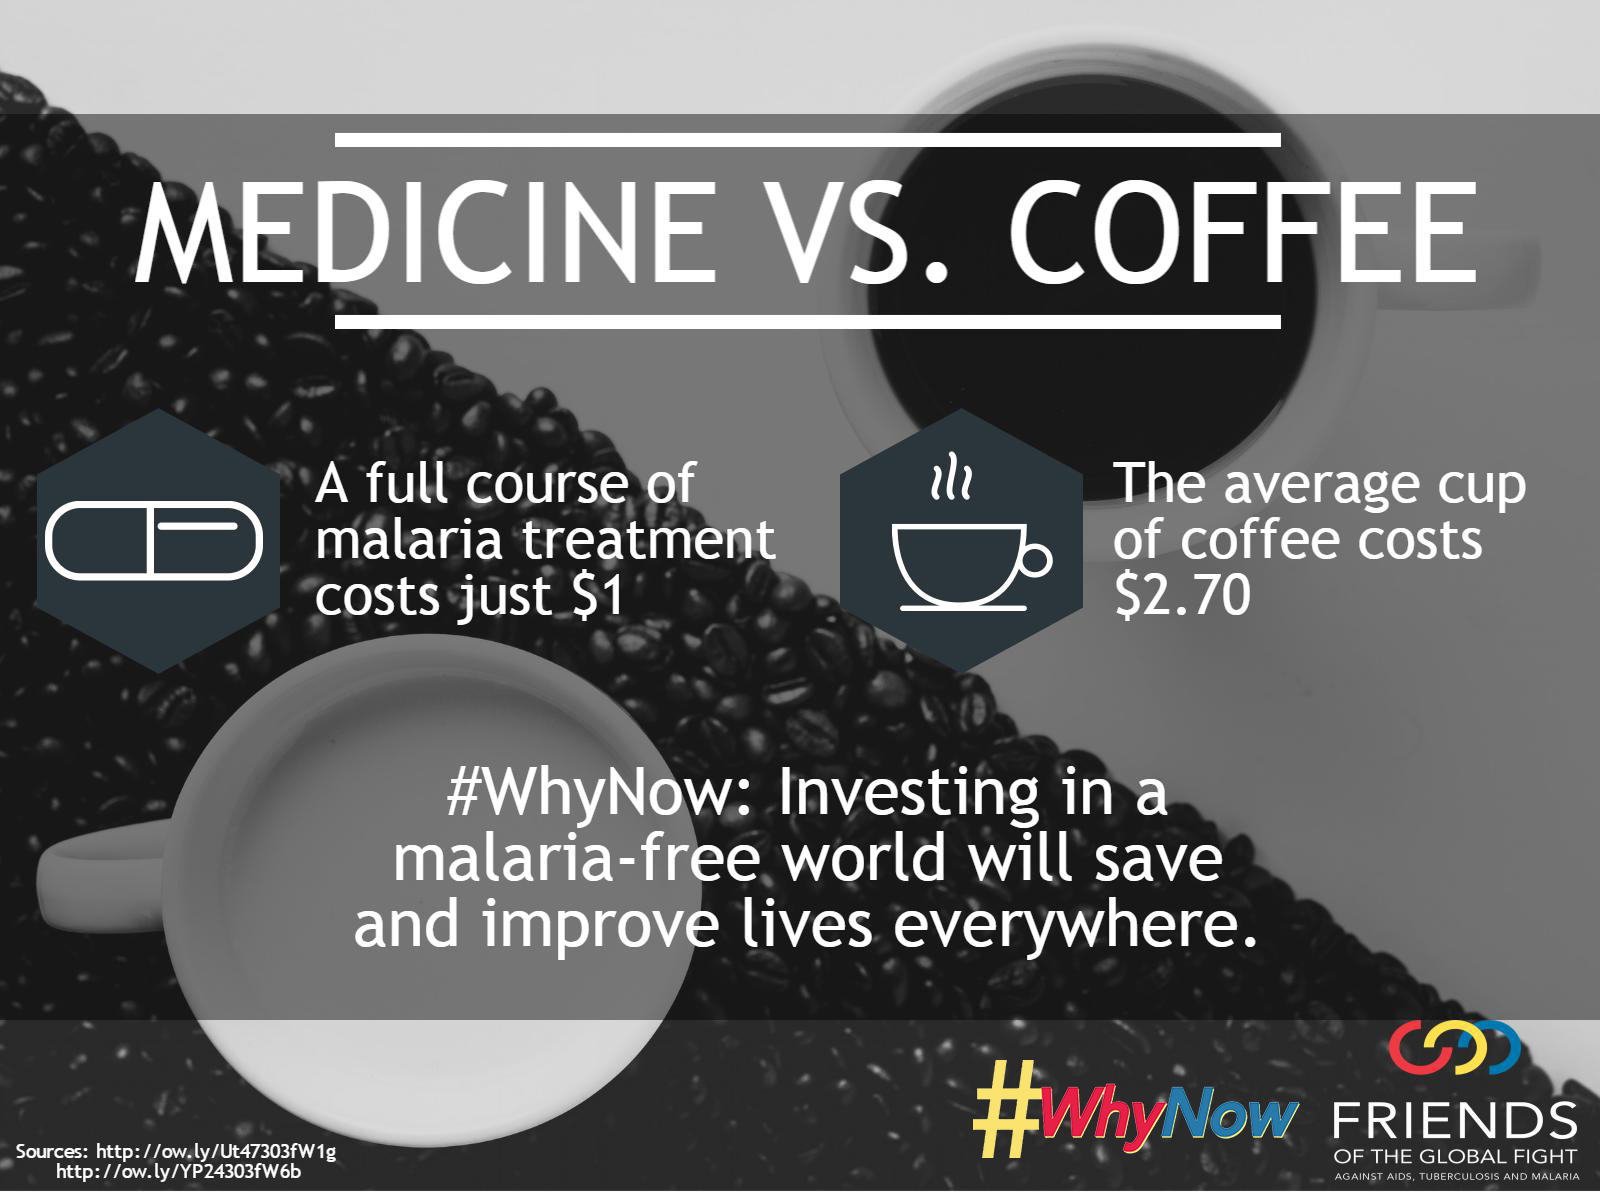 WhyNow Sharegraphic Malaria medication